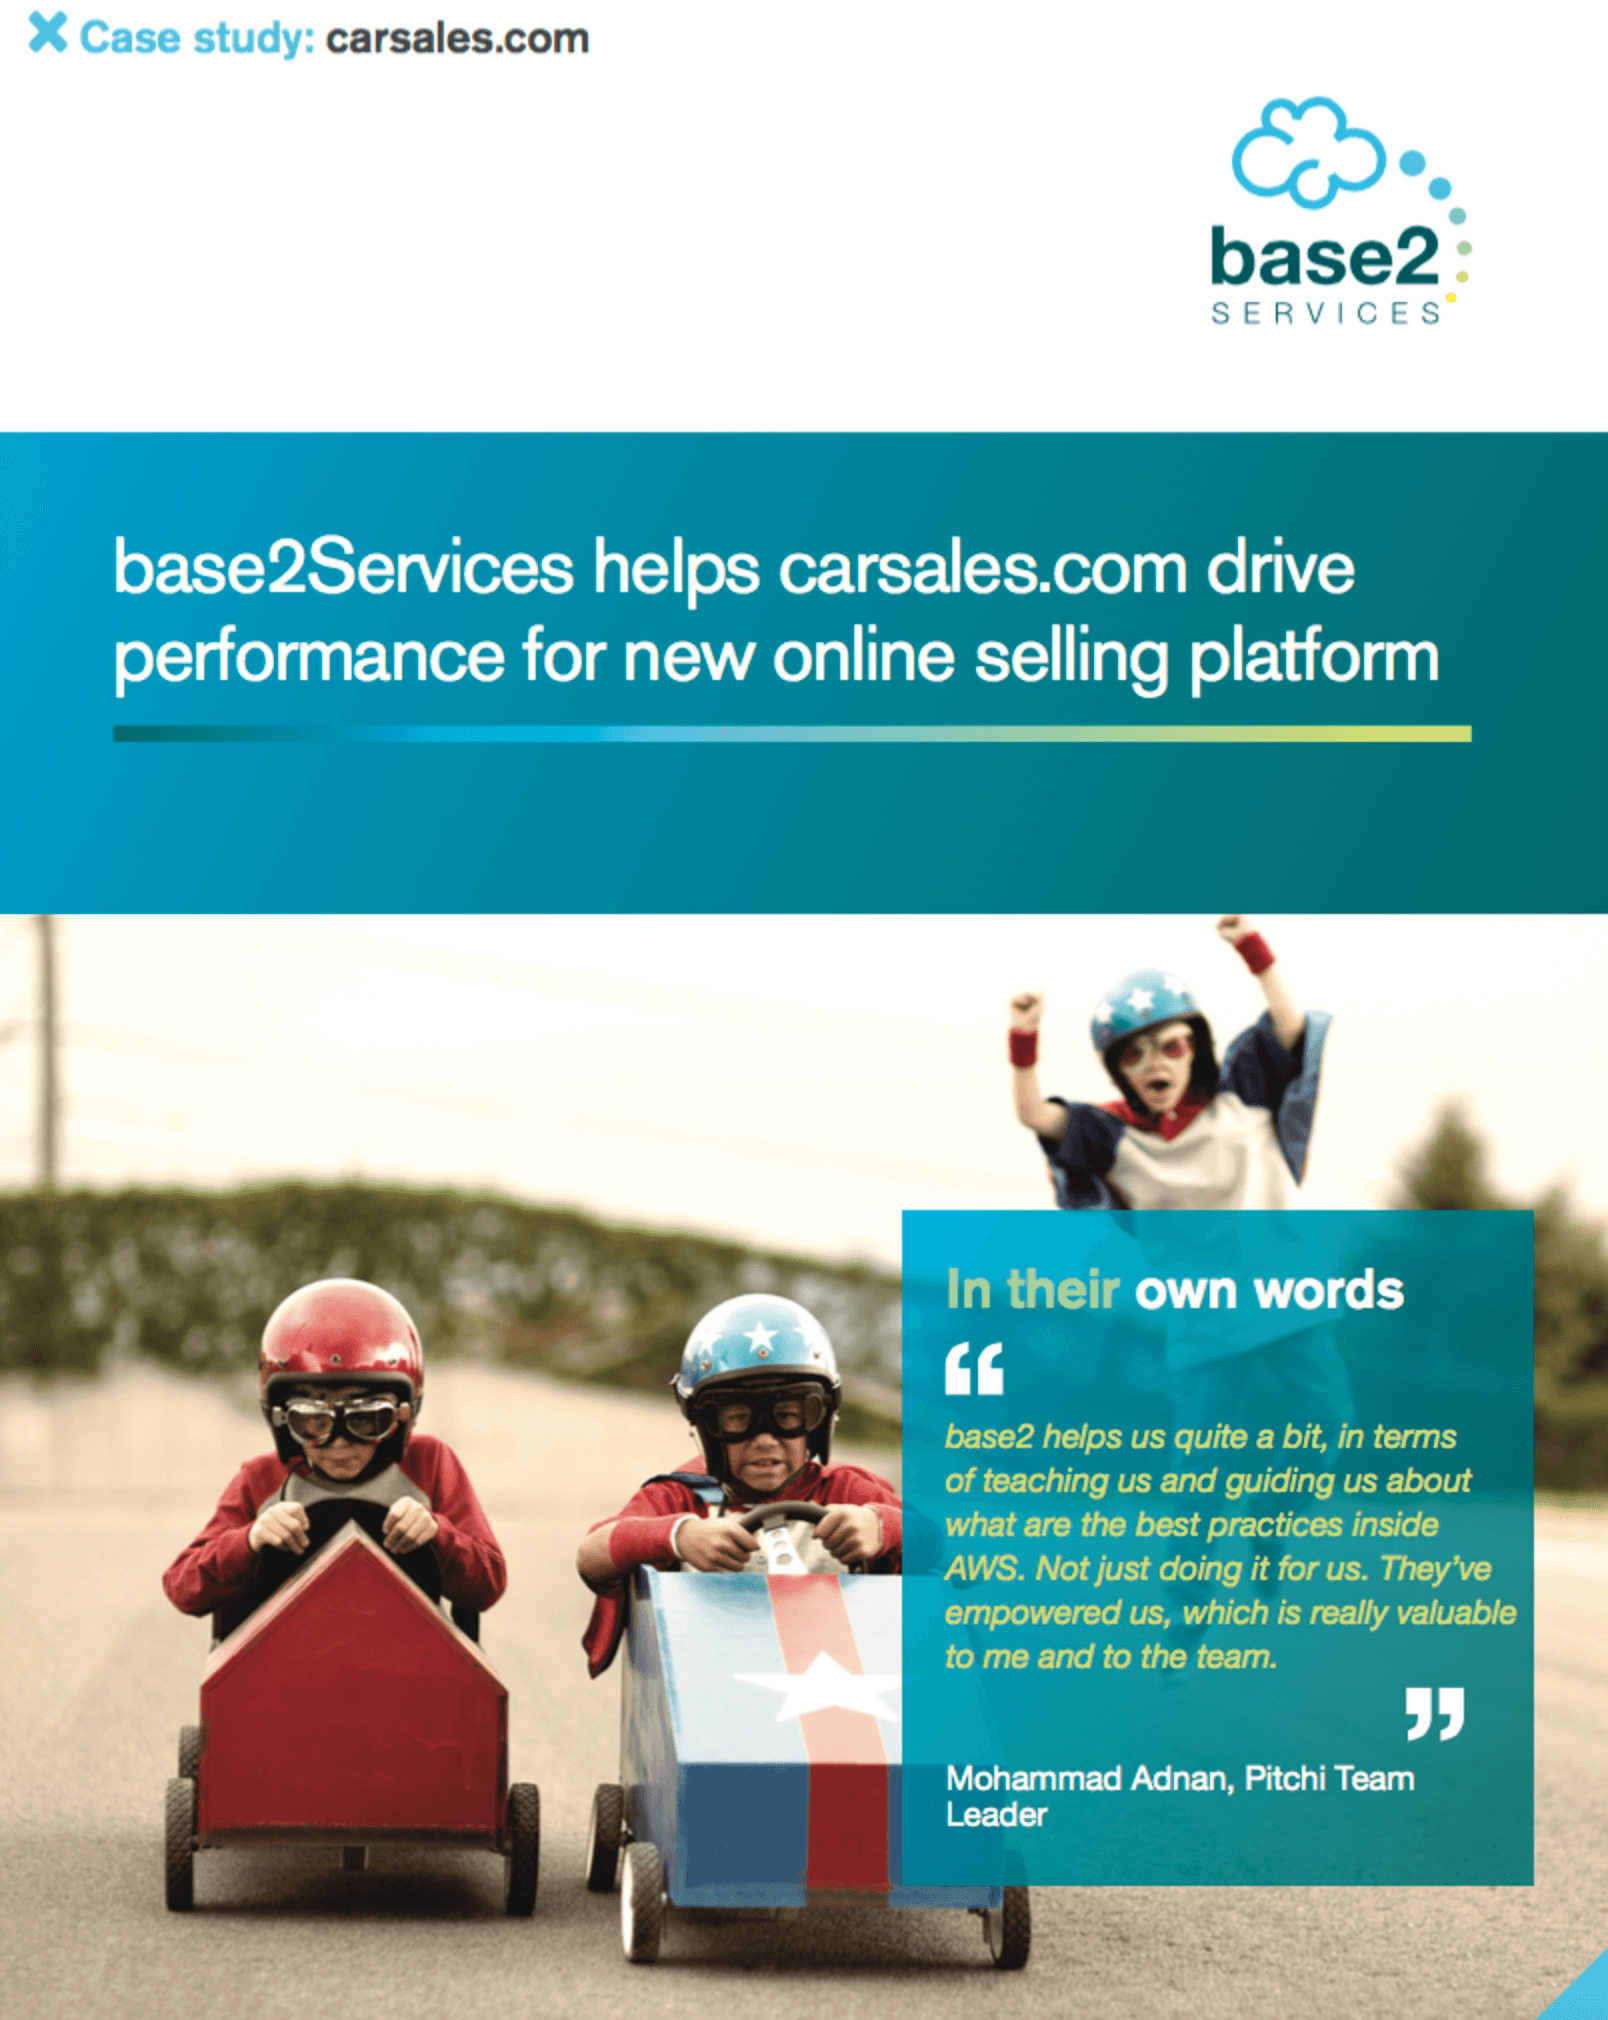 Carsales Casestudy | DevOps Consulting and Managed Services on AWS